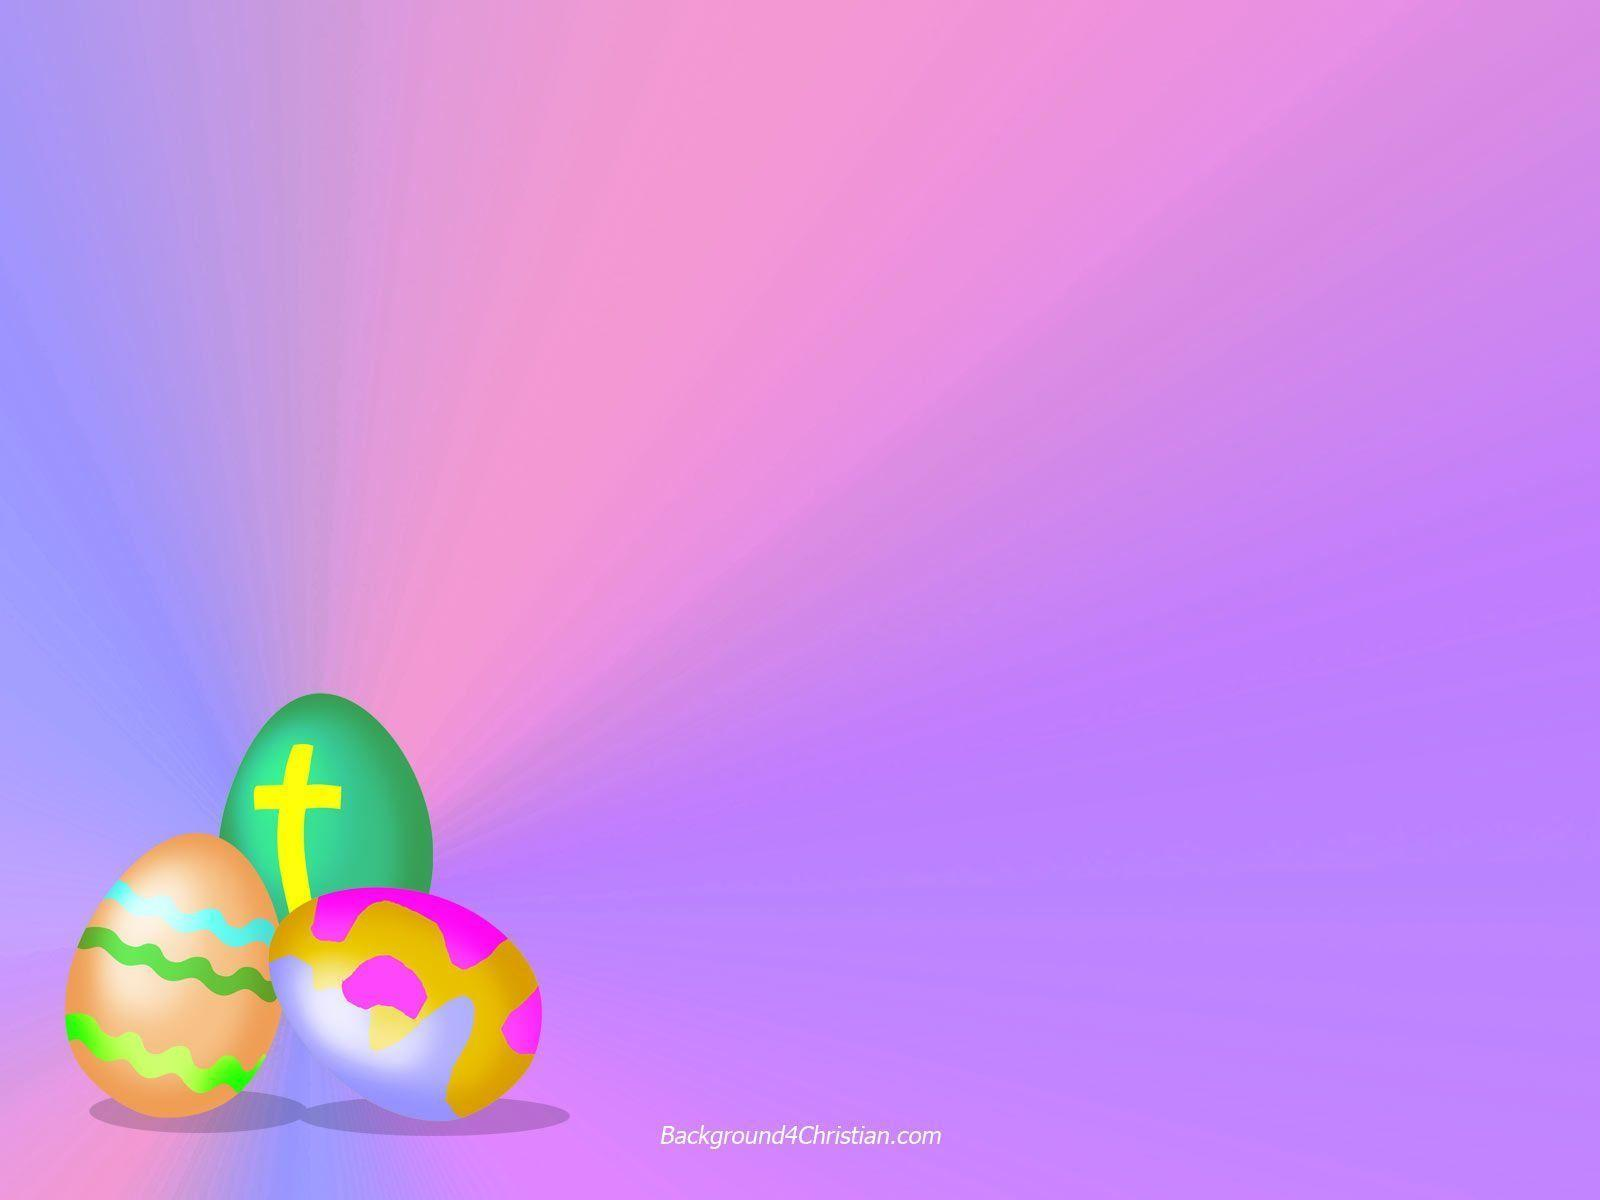 Wallpapers For > Resurrection Sunday Backgrounds